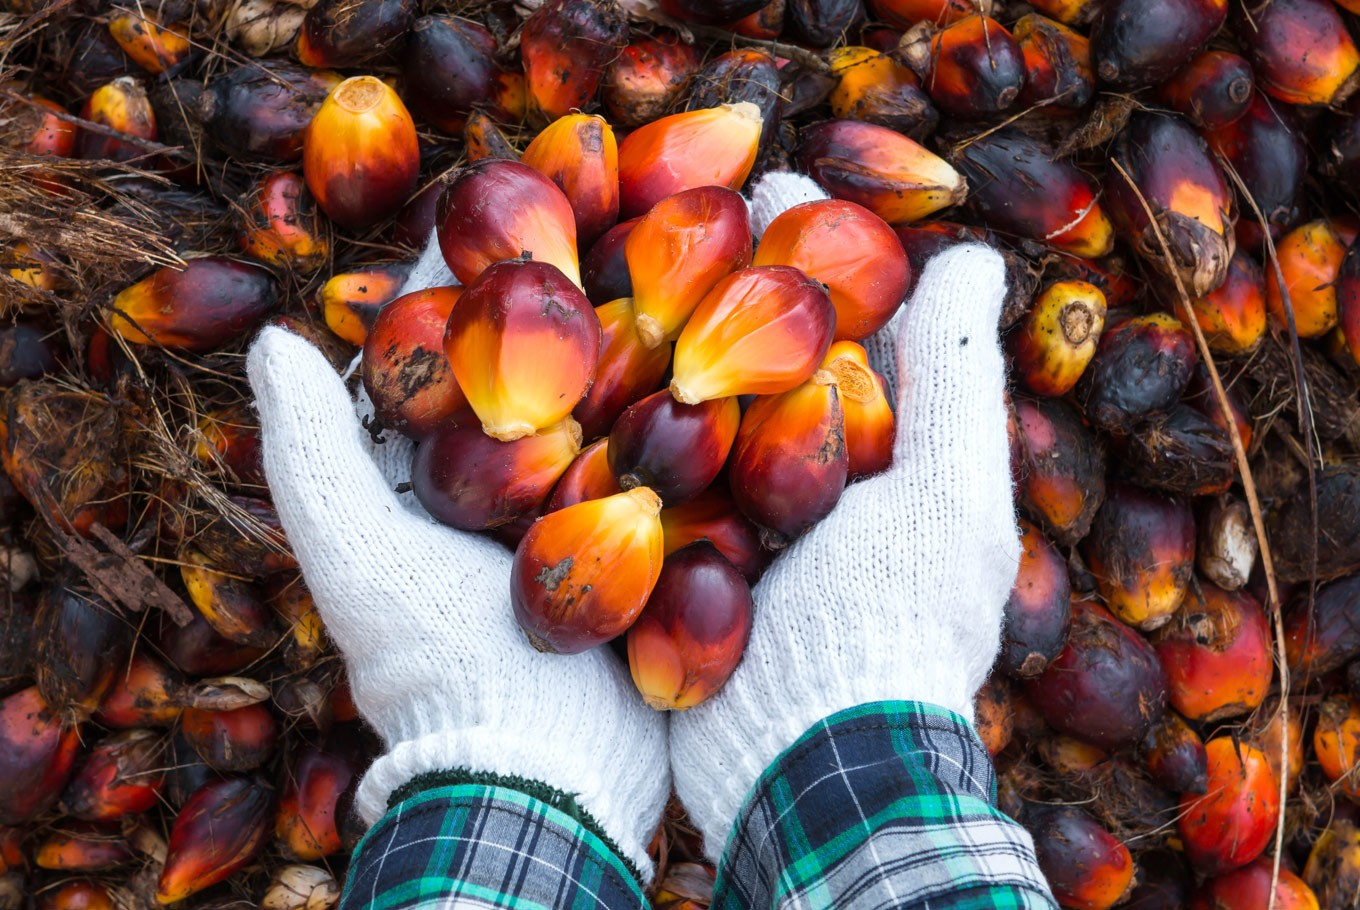 An erosion of trust in palm oil